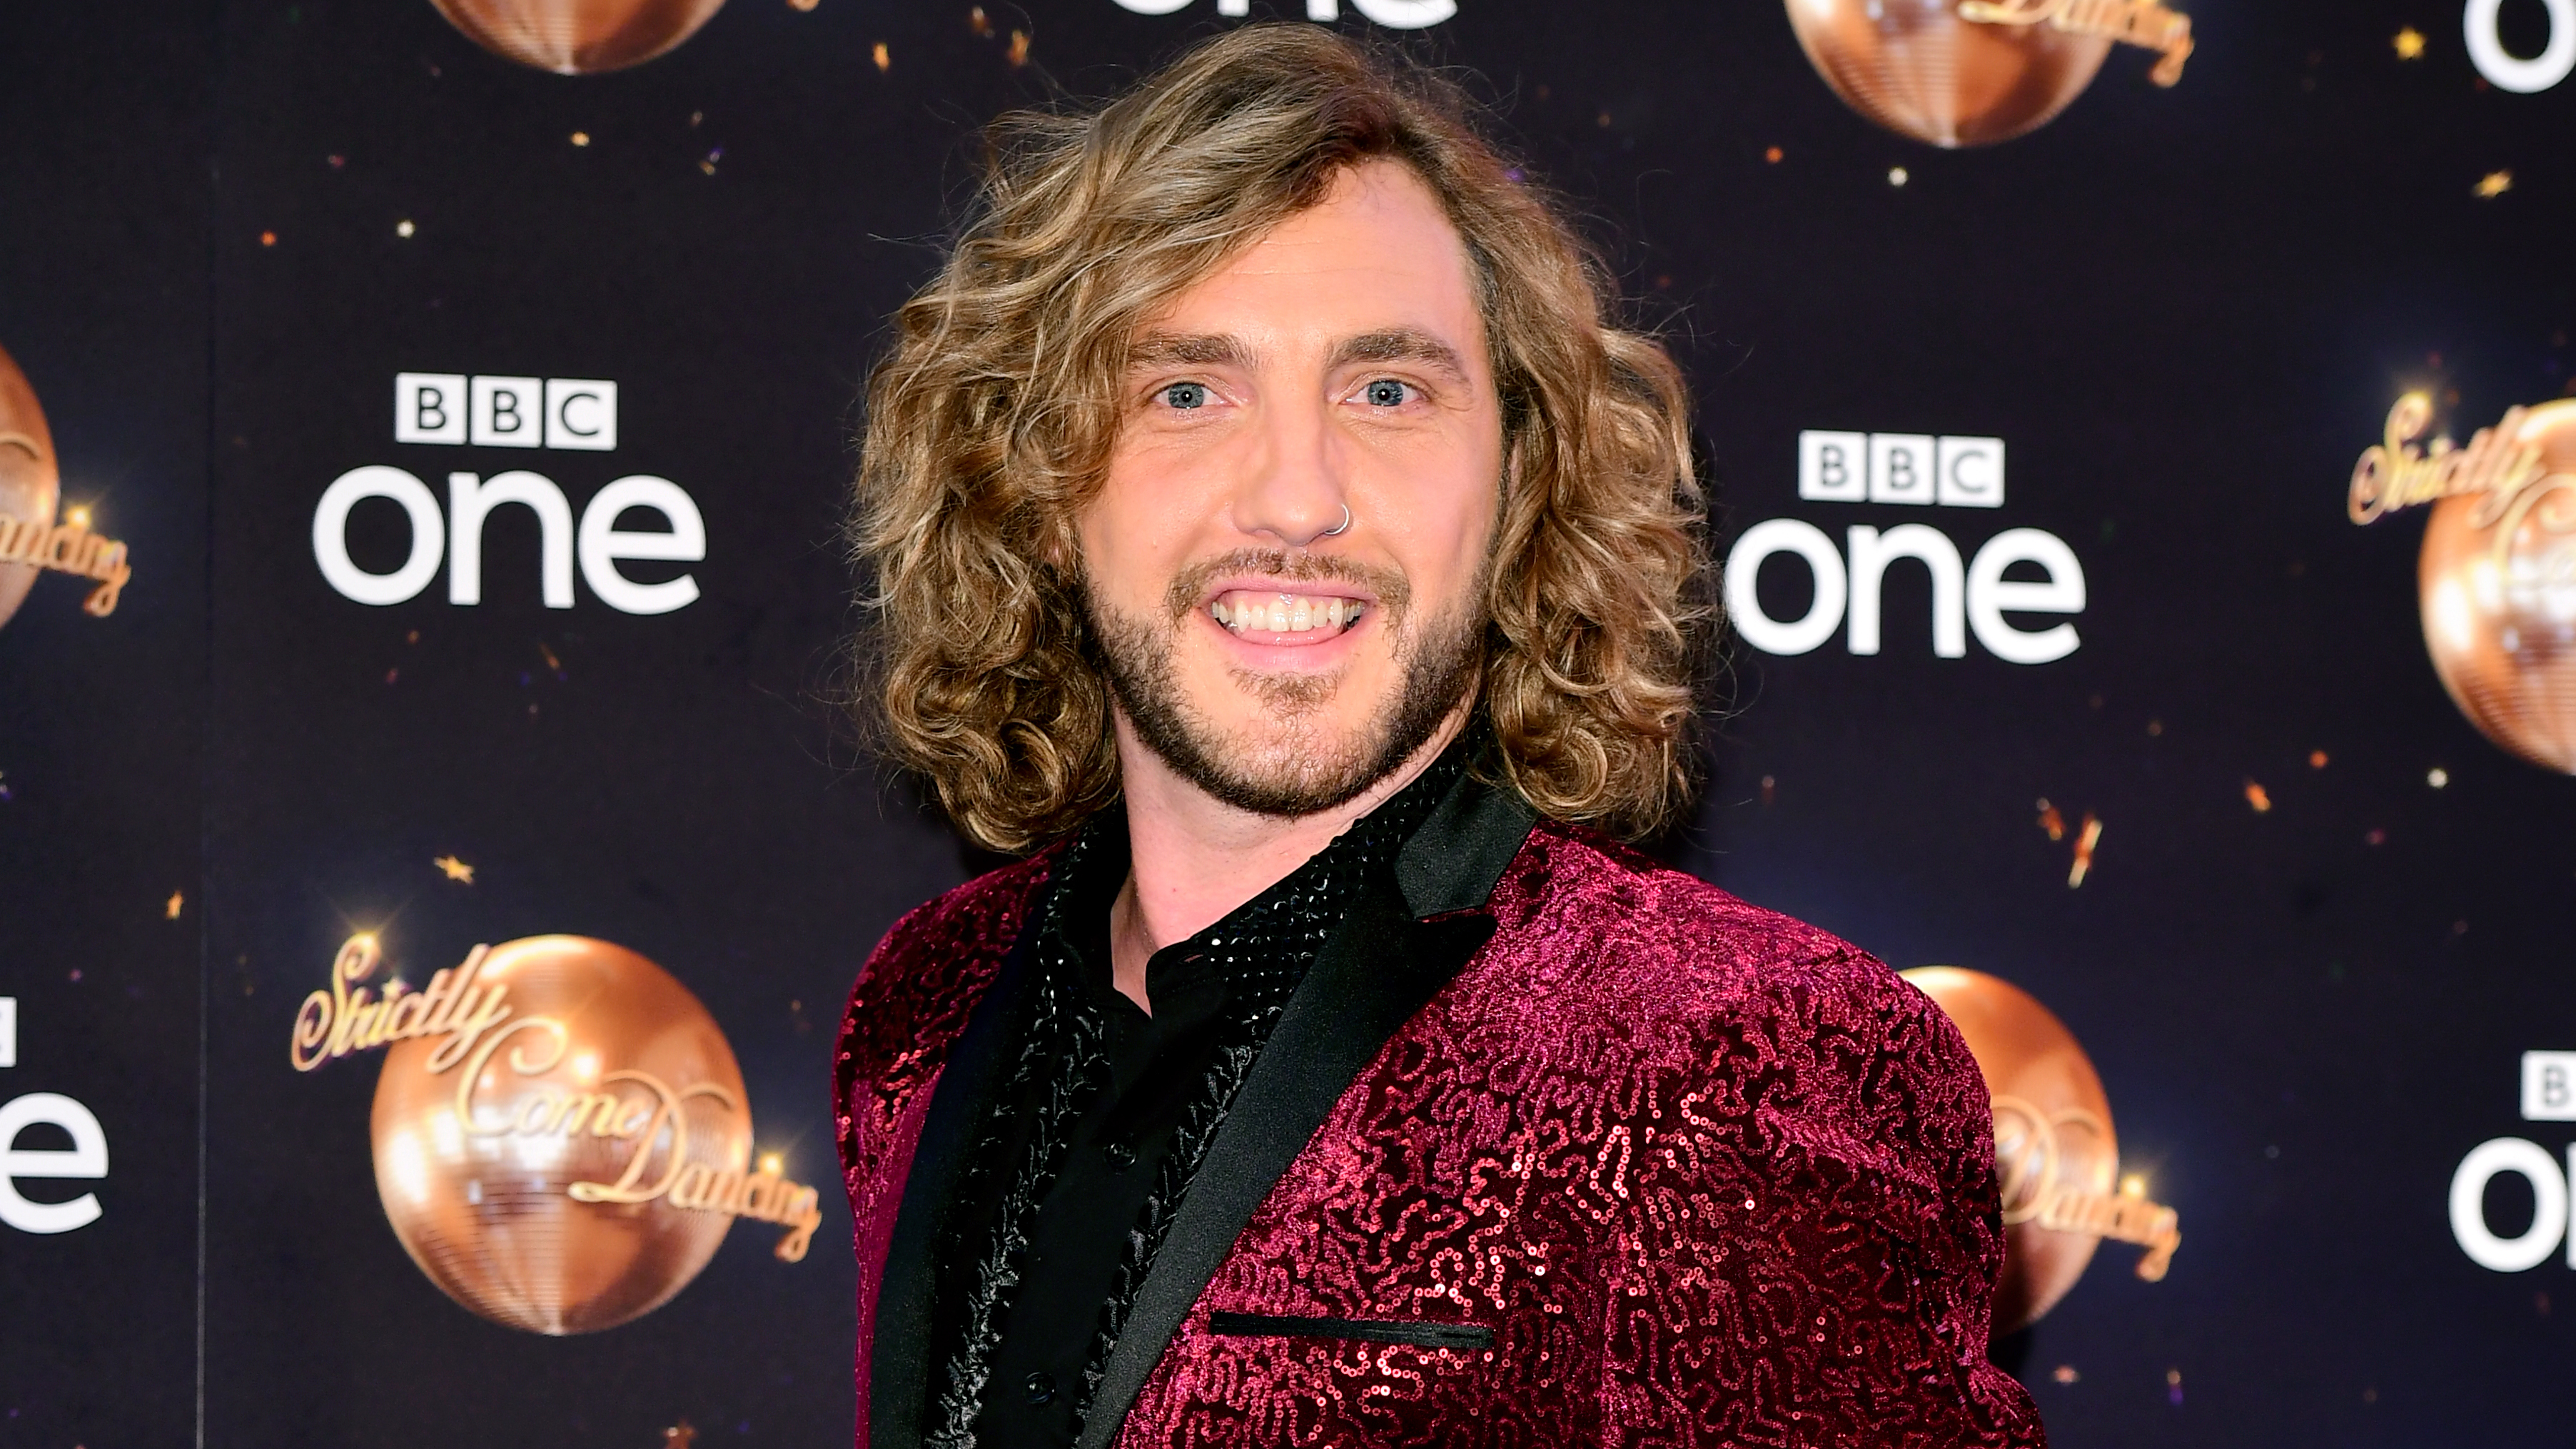 Seann Walsh Breaks Silence Over Strictly Kiss With Katya Jones